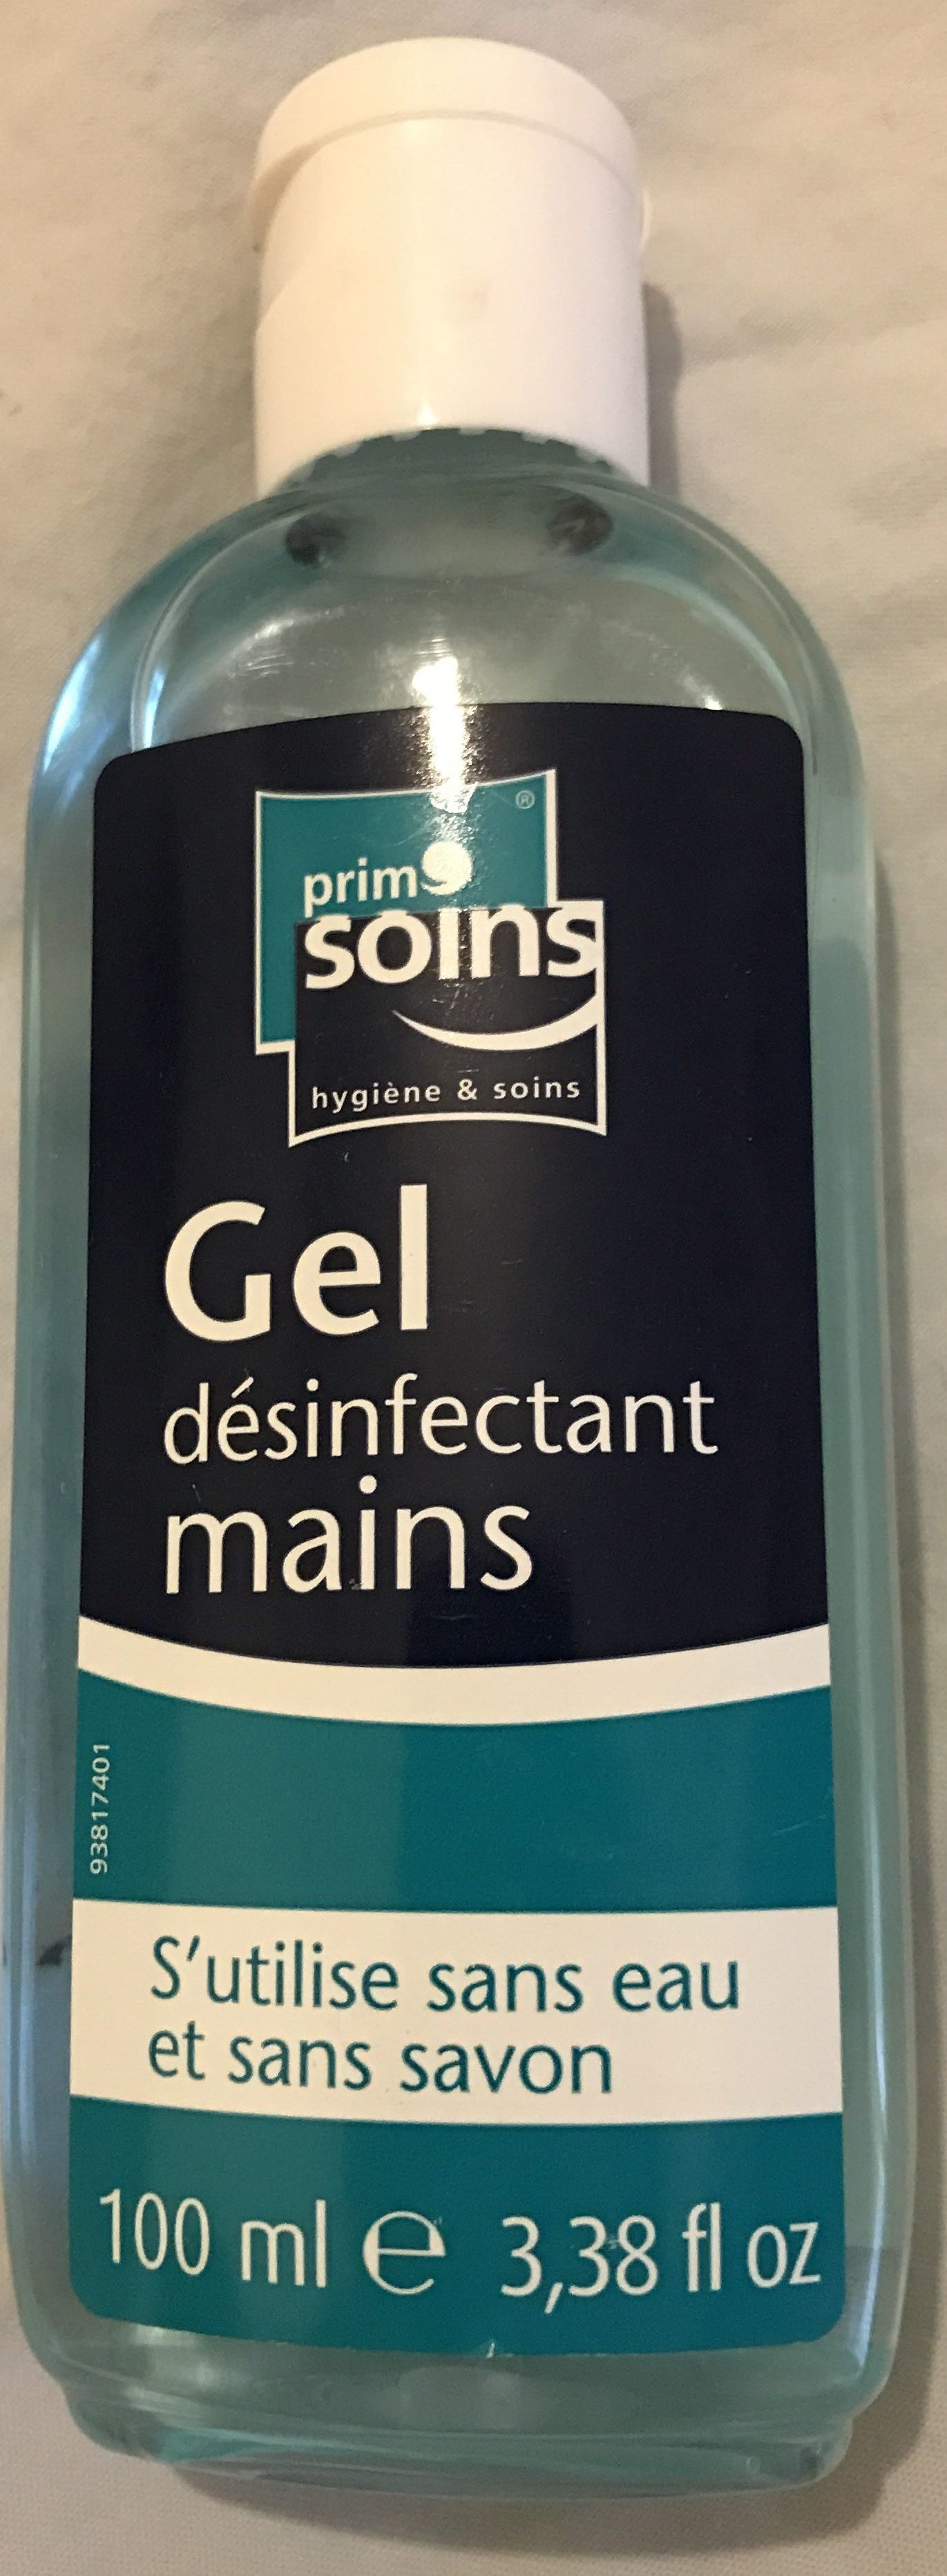 Gel désinfectant mains - Product - fr